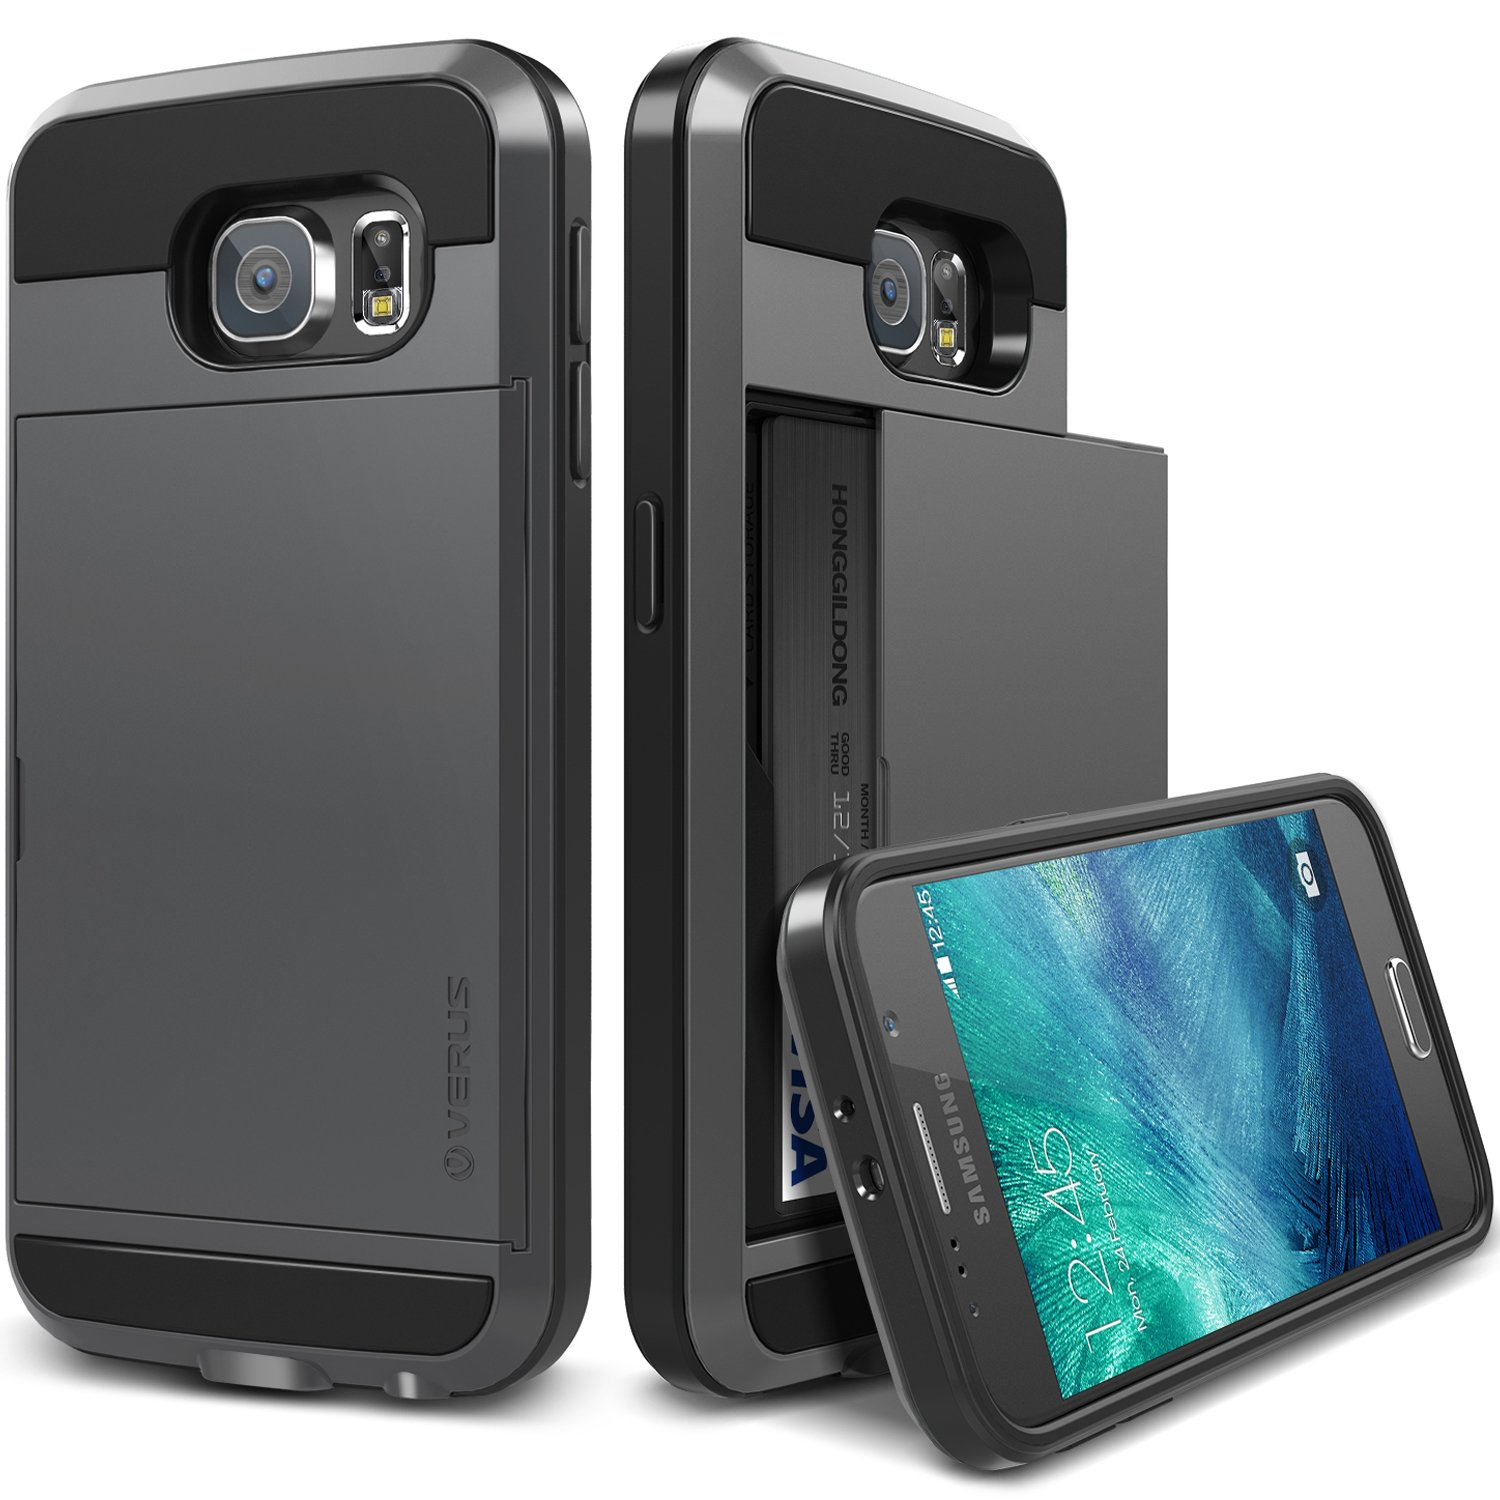 Galaxy S6 Case, Verus (Card Slot Case) Samsung Galaxy S6 Case (Damda Slide)(Dark Silver) Dual Layer Protective Card Case - Verizon, AT&T, Sprint, T-Mobile, International, and Unlocked - Cover for Samsung Galaxy SVI SM-G925F Early 2015 Model